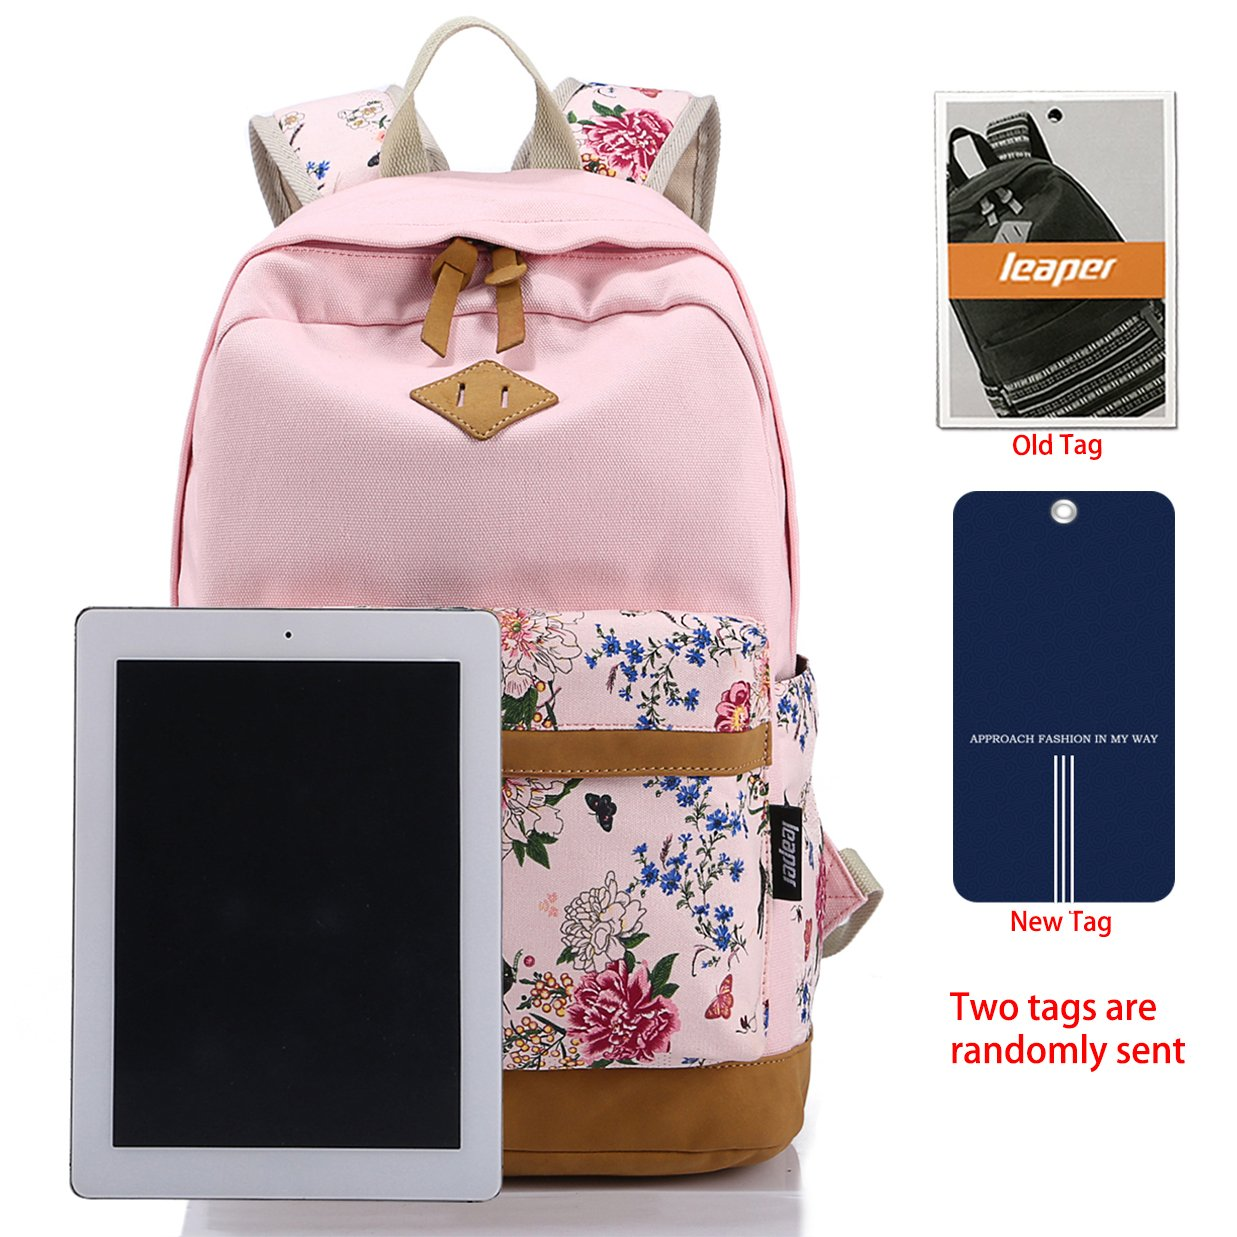 Leaper casual style lightweight canvas laptop backpack cute travel leaper casual style lightweight canvas laptop backpack cute travel school college shoulder bagbookbagsdaypack for teenage girlsstudentswomen with laptop fandeluxe Choice Image